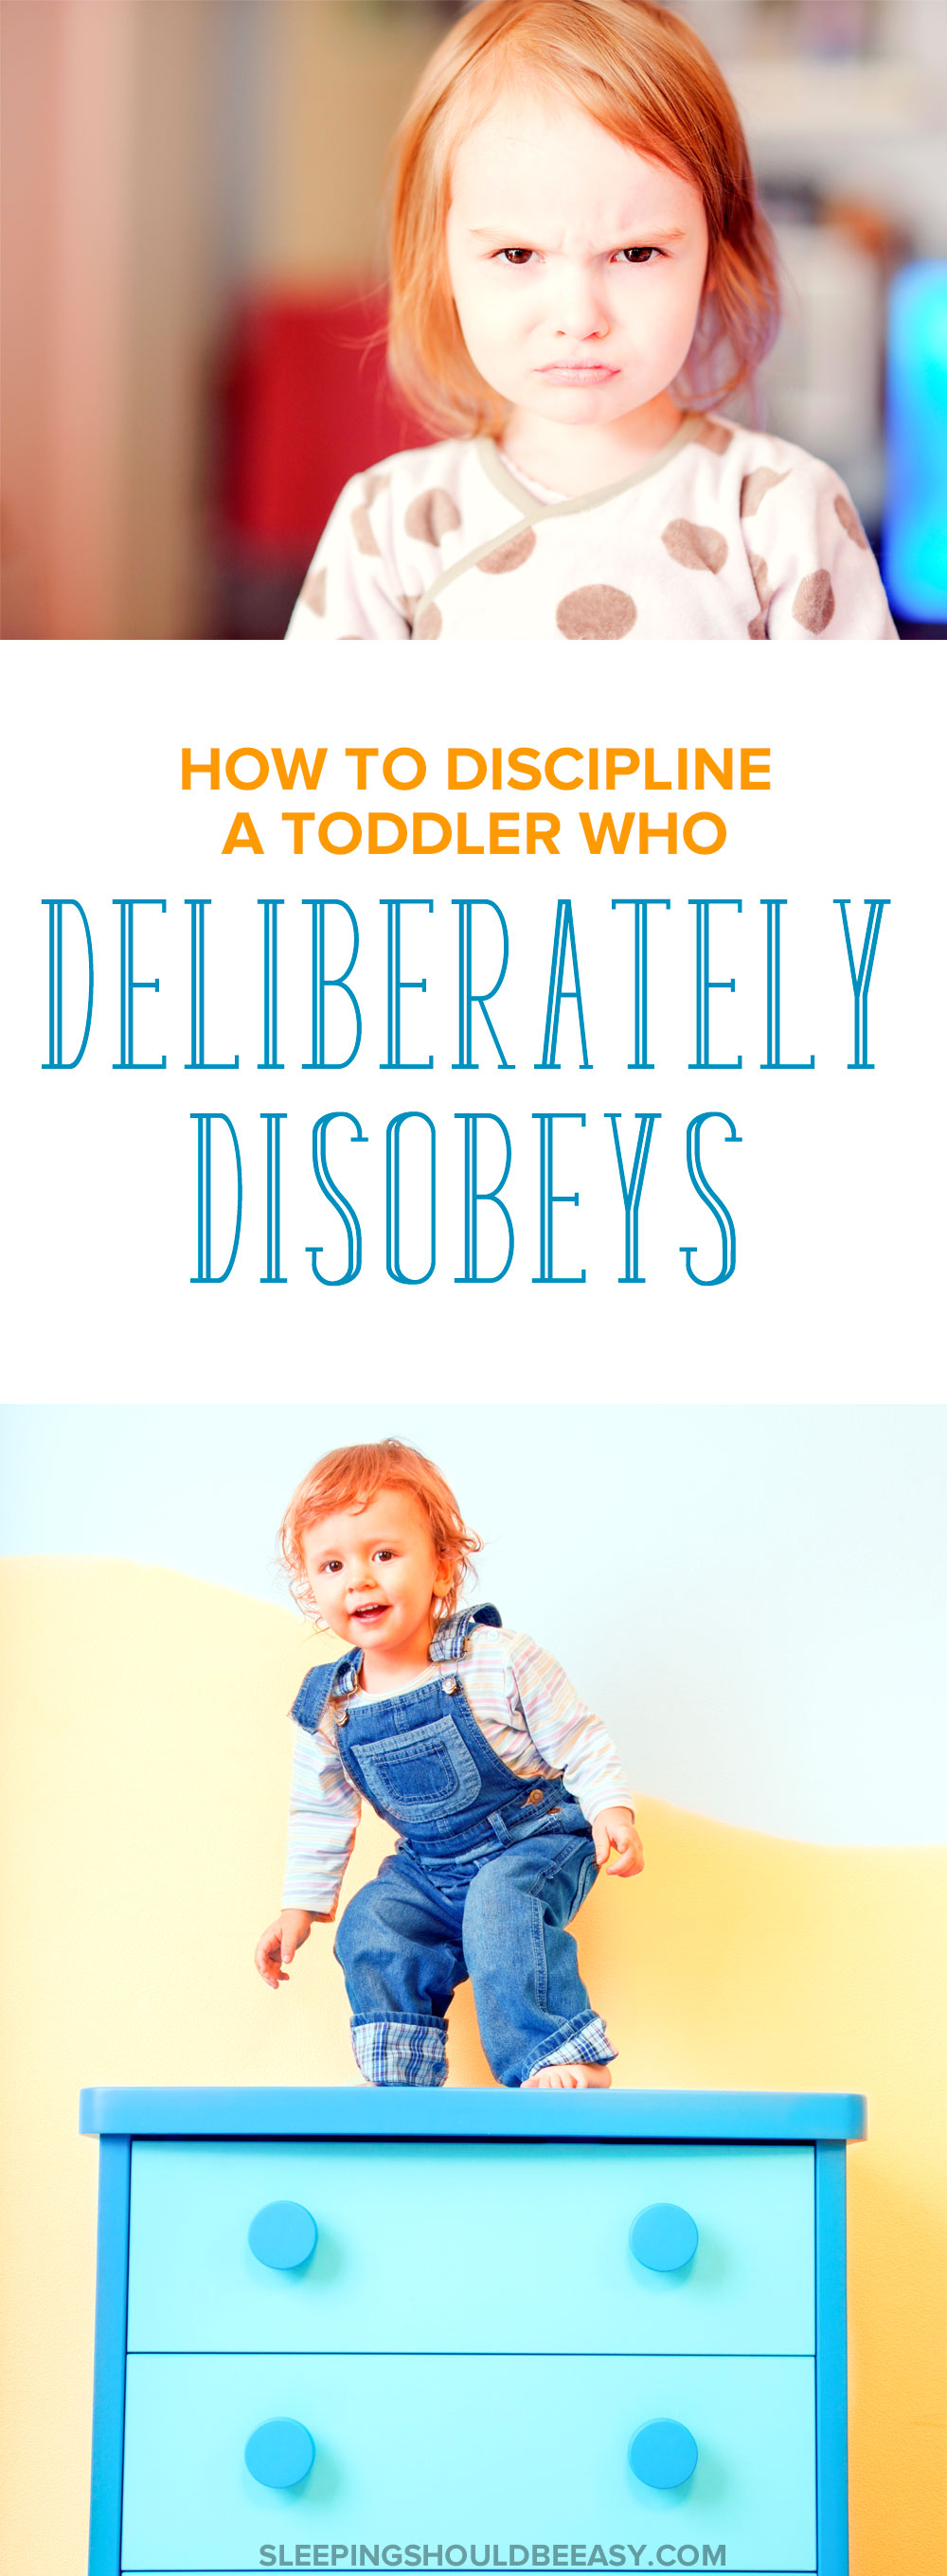 What do you do when your toddler disobeys on purpose? Learn how to discipline a defiant child who doesn't listen using positive parenting.